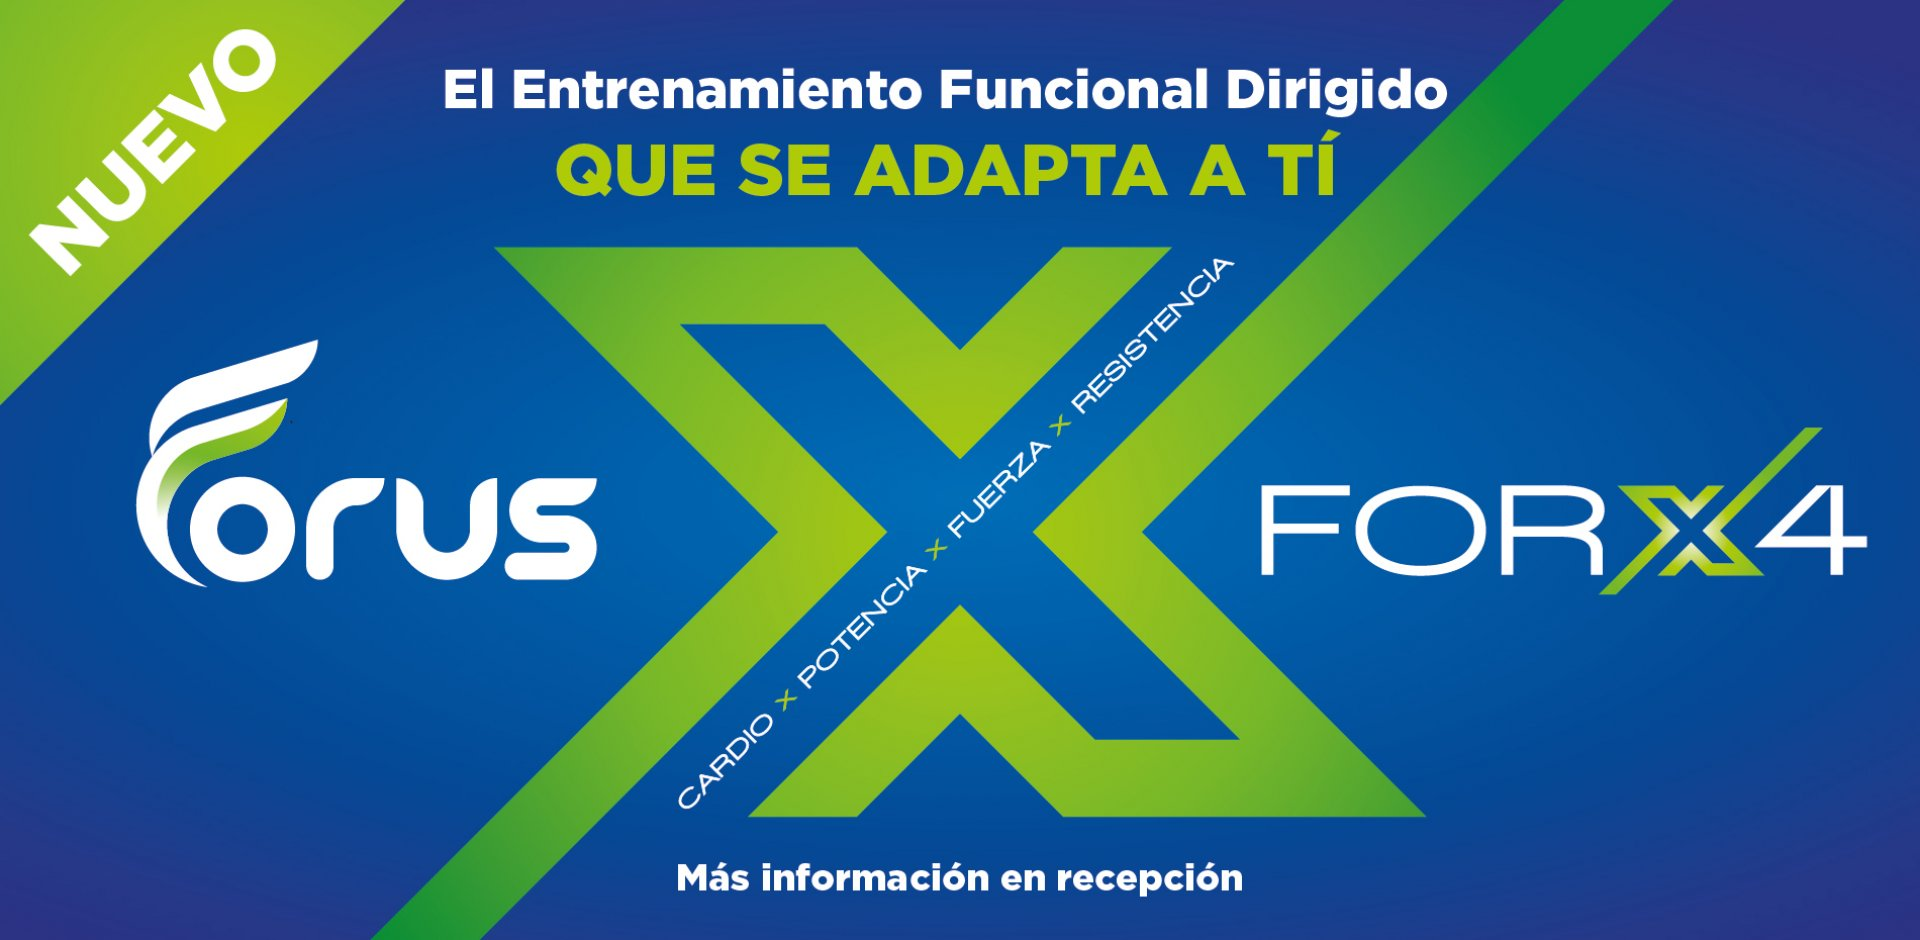 FORX4